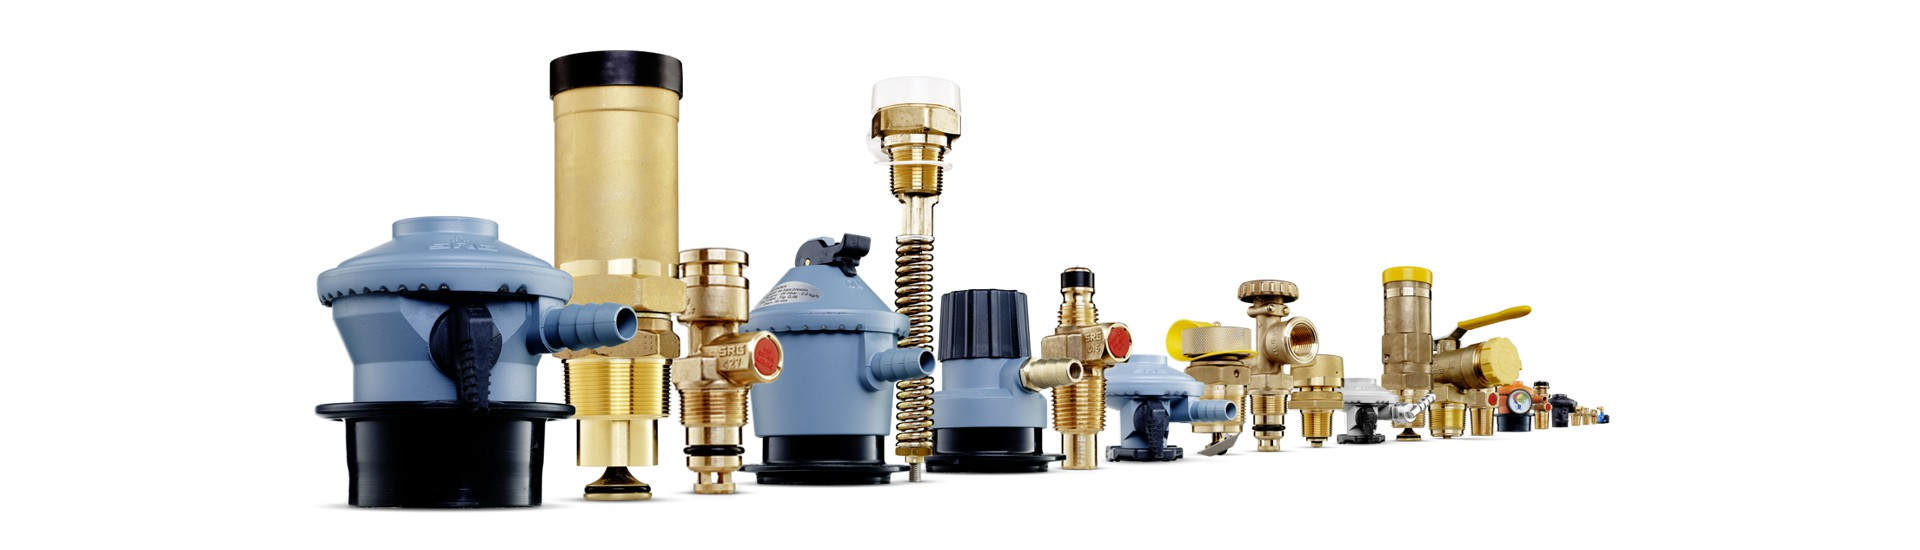 Rotarex SRG provides a high-performance range of LPG & propane valves, LPG & propane regulators, LPG & propane level gauges and more for portable cylinder, large tank, automotive and forklift applications.